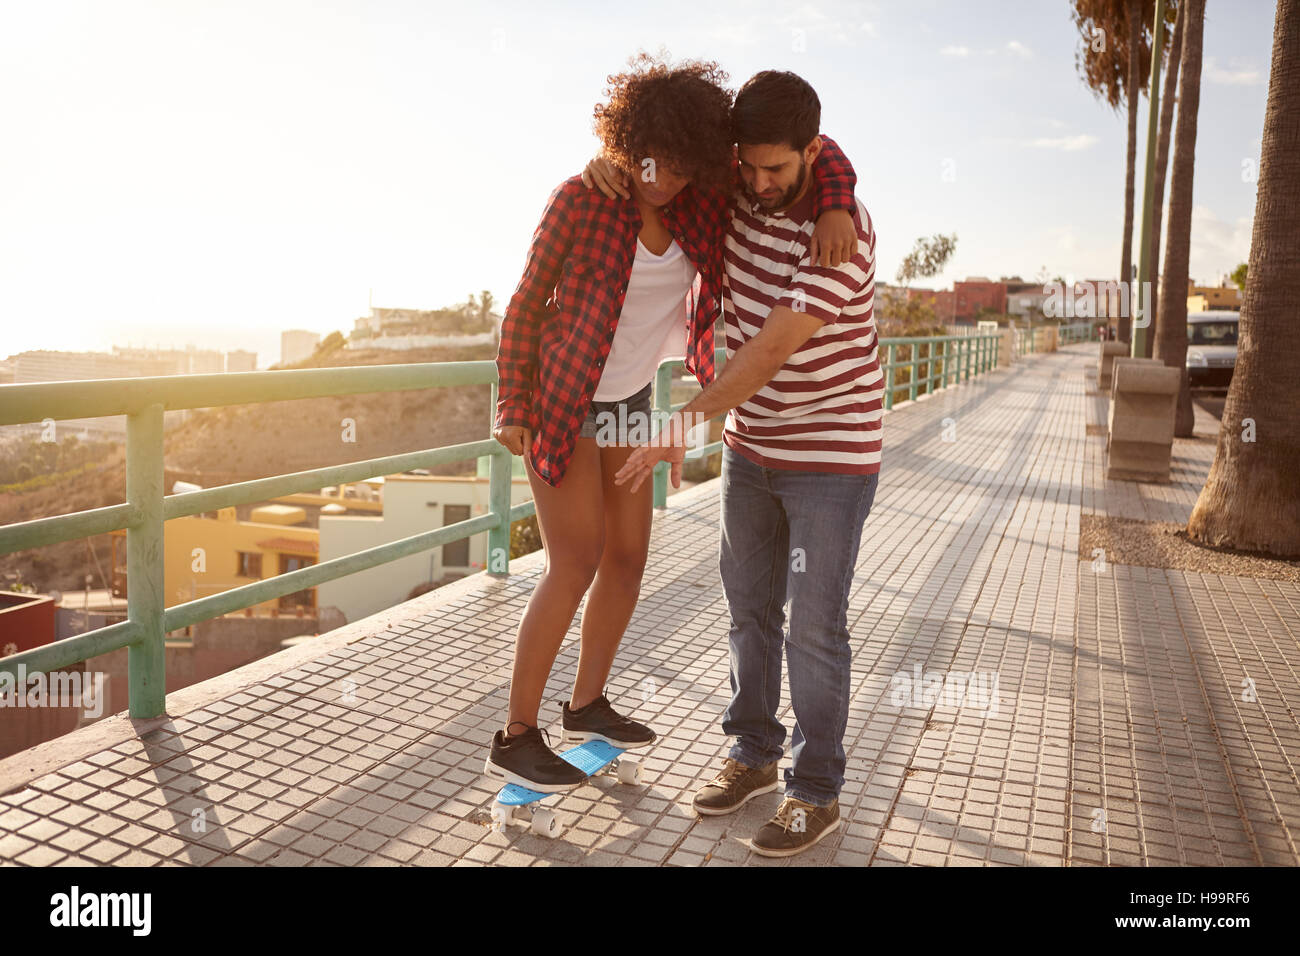 Boy showing girl with hand gestures how the skateboard works while holding her up and her arm around his shoulder - Stock Image